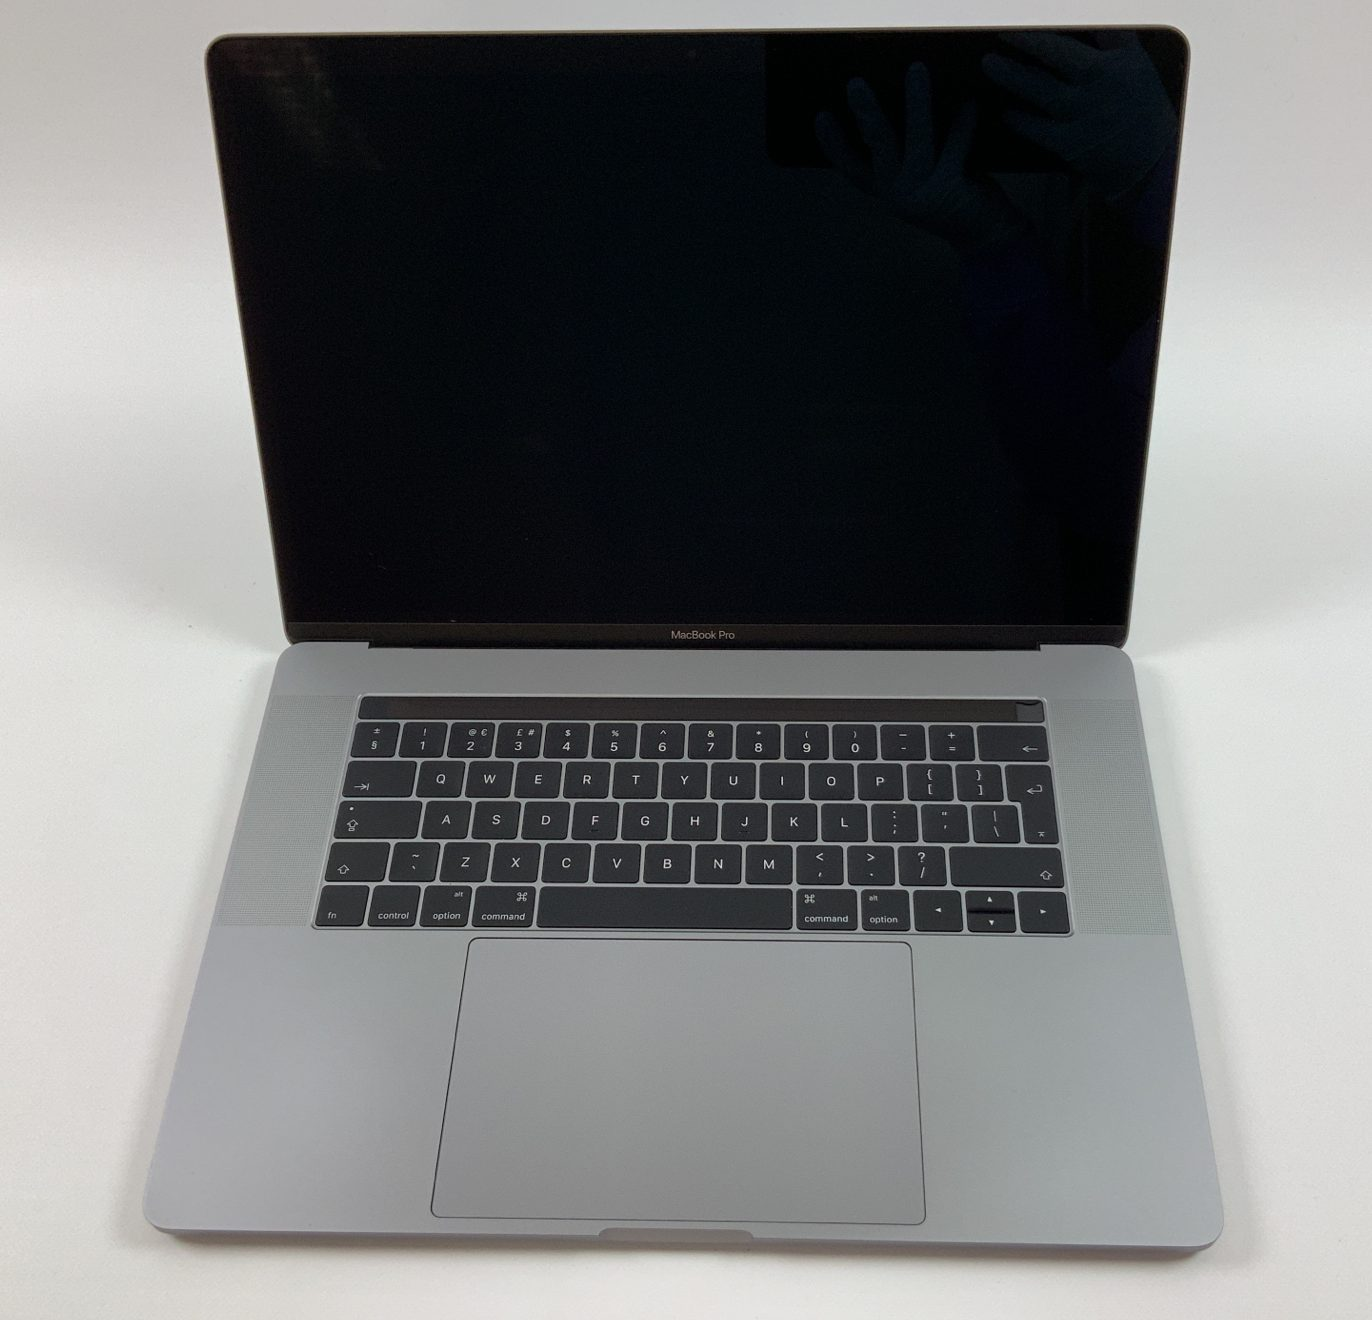 "MacBook Pro 15"" Touch Bar Late 2016 (Intel Quad-Core i7 2.7 GHz 16 GB RAM 512 GB SSD), Space Gray, Intel Quad-Core i7 2.7 GHz, 16 GB RAM, 512 GB SSD, Afbeelding 1"